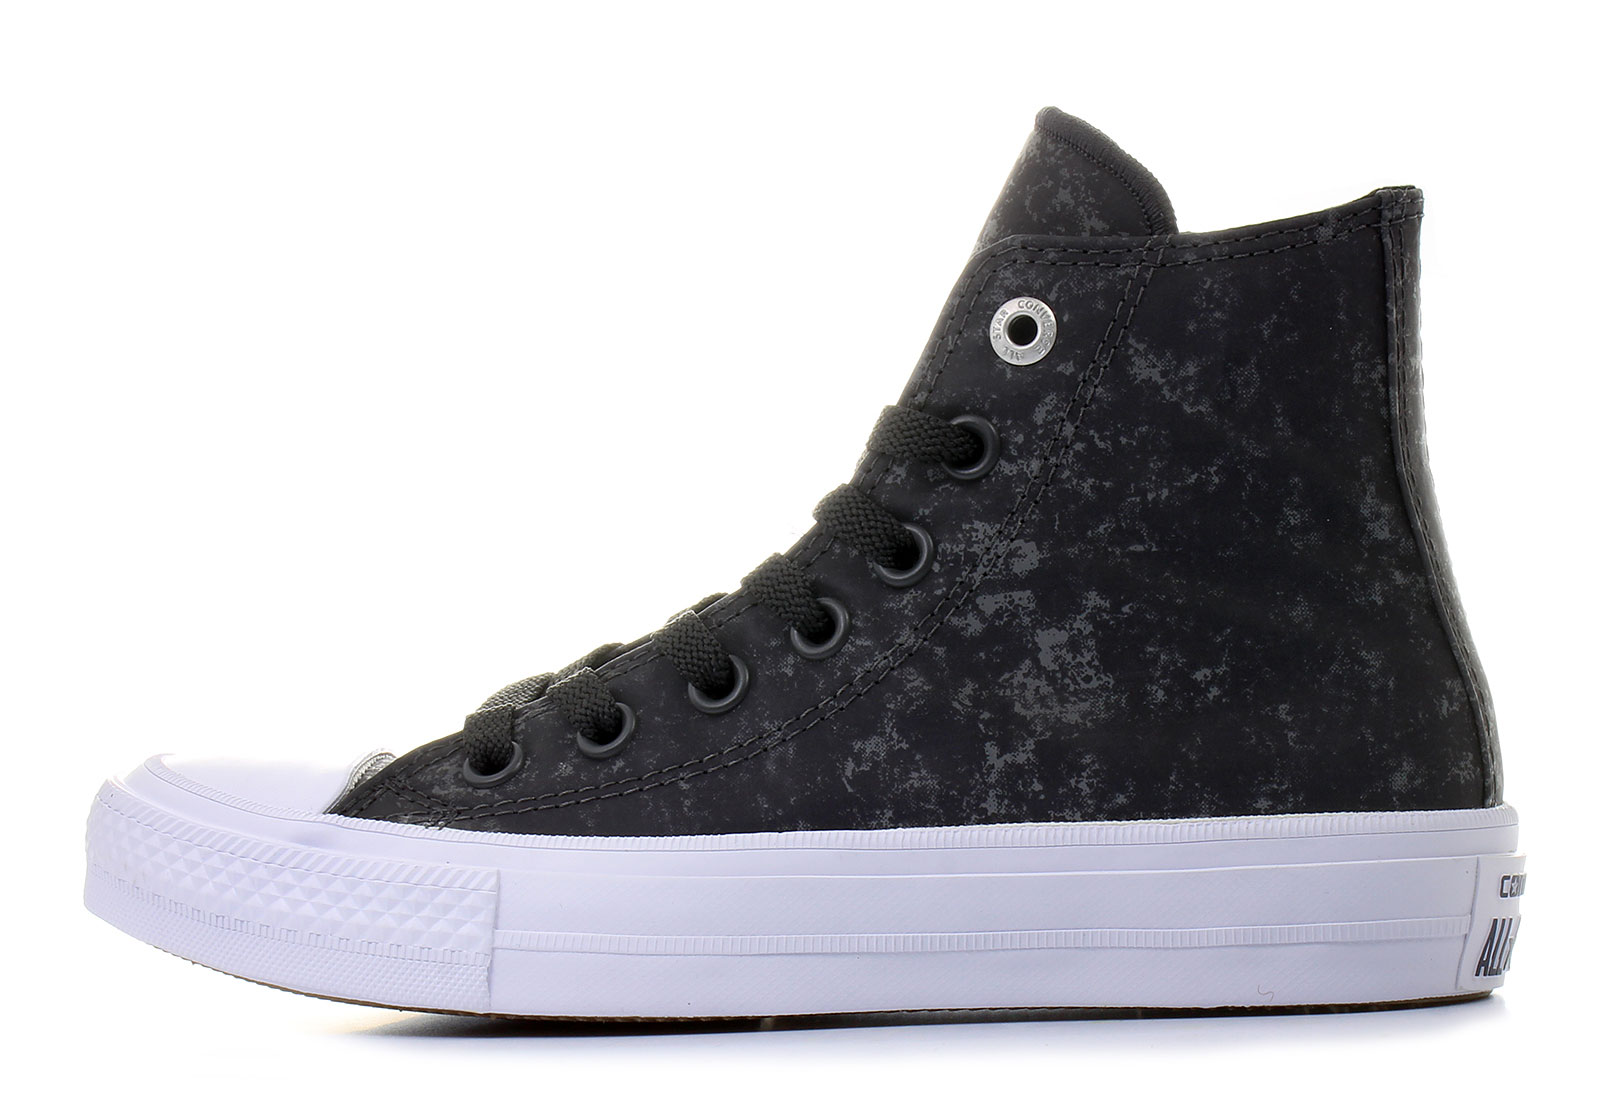 Converse Sneakers Chuck Taylor All Star II Hi 153544C Online shop for sneakers, shoes and boots